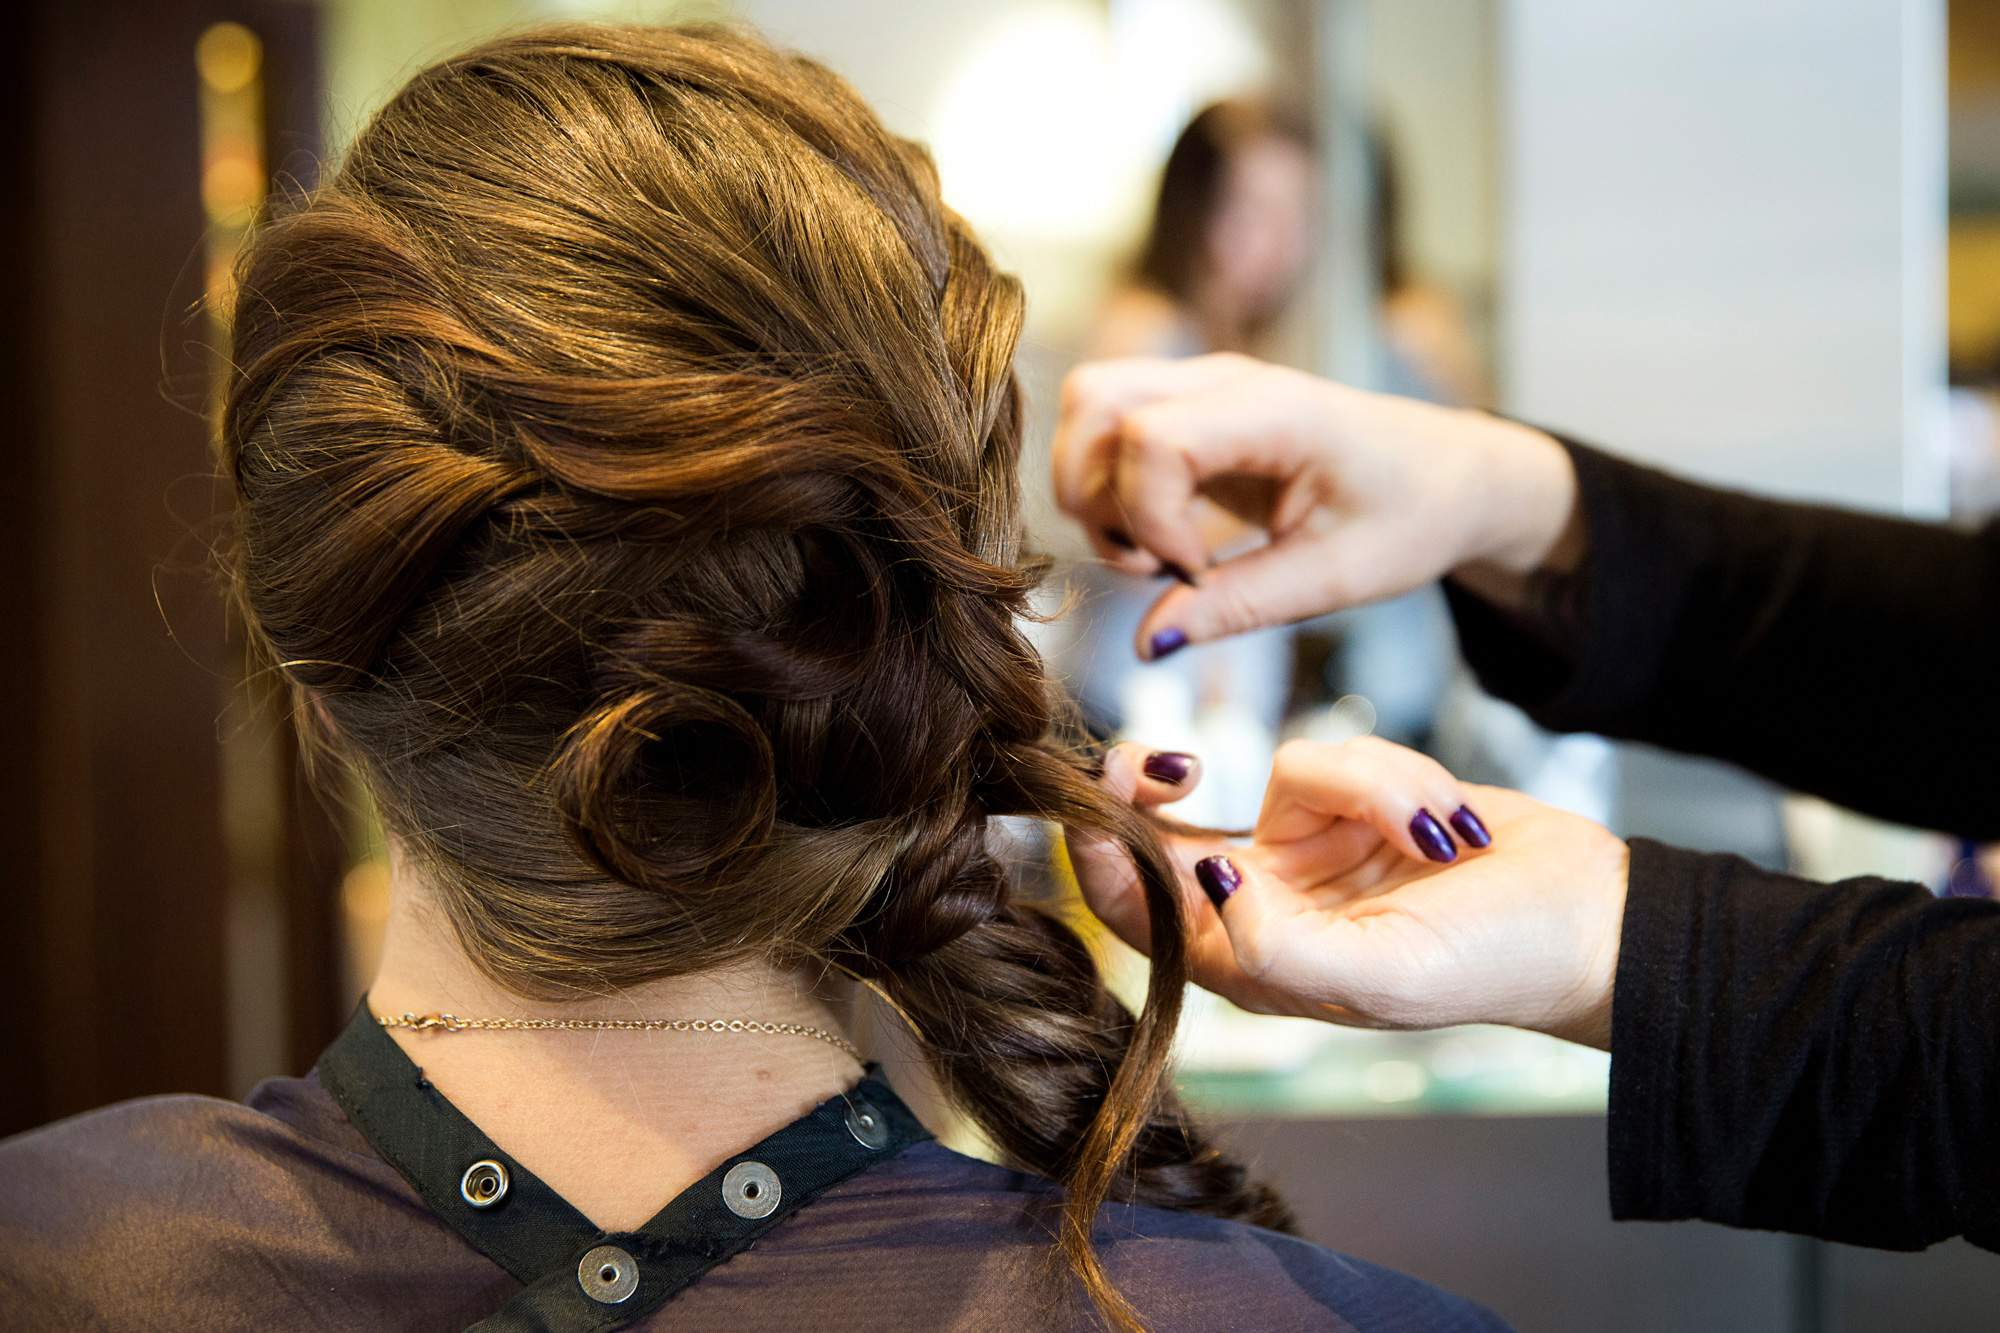 Hair Styling for any occasion - Salon Services - Rapunzels Salon and Spa - Canmore